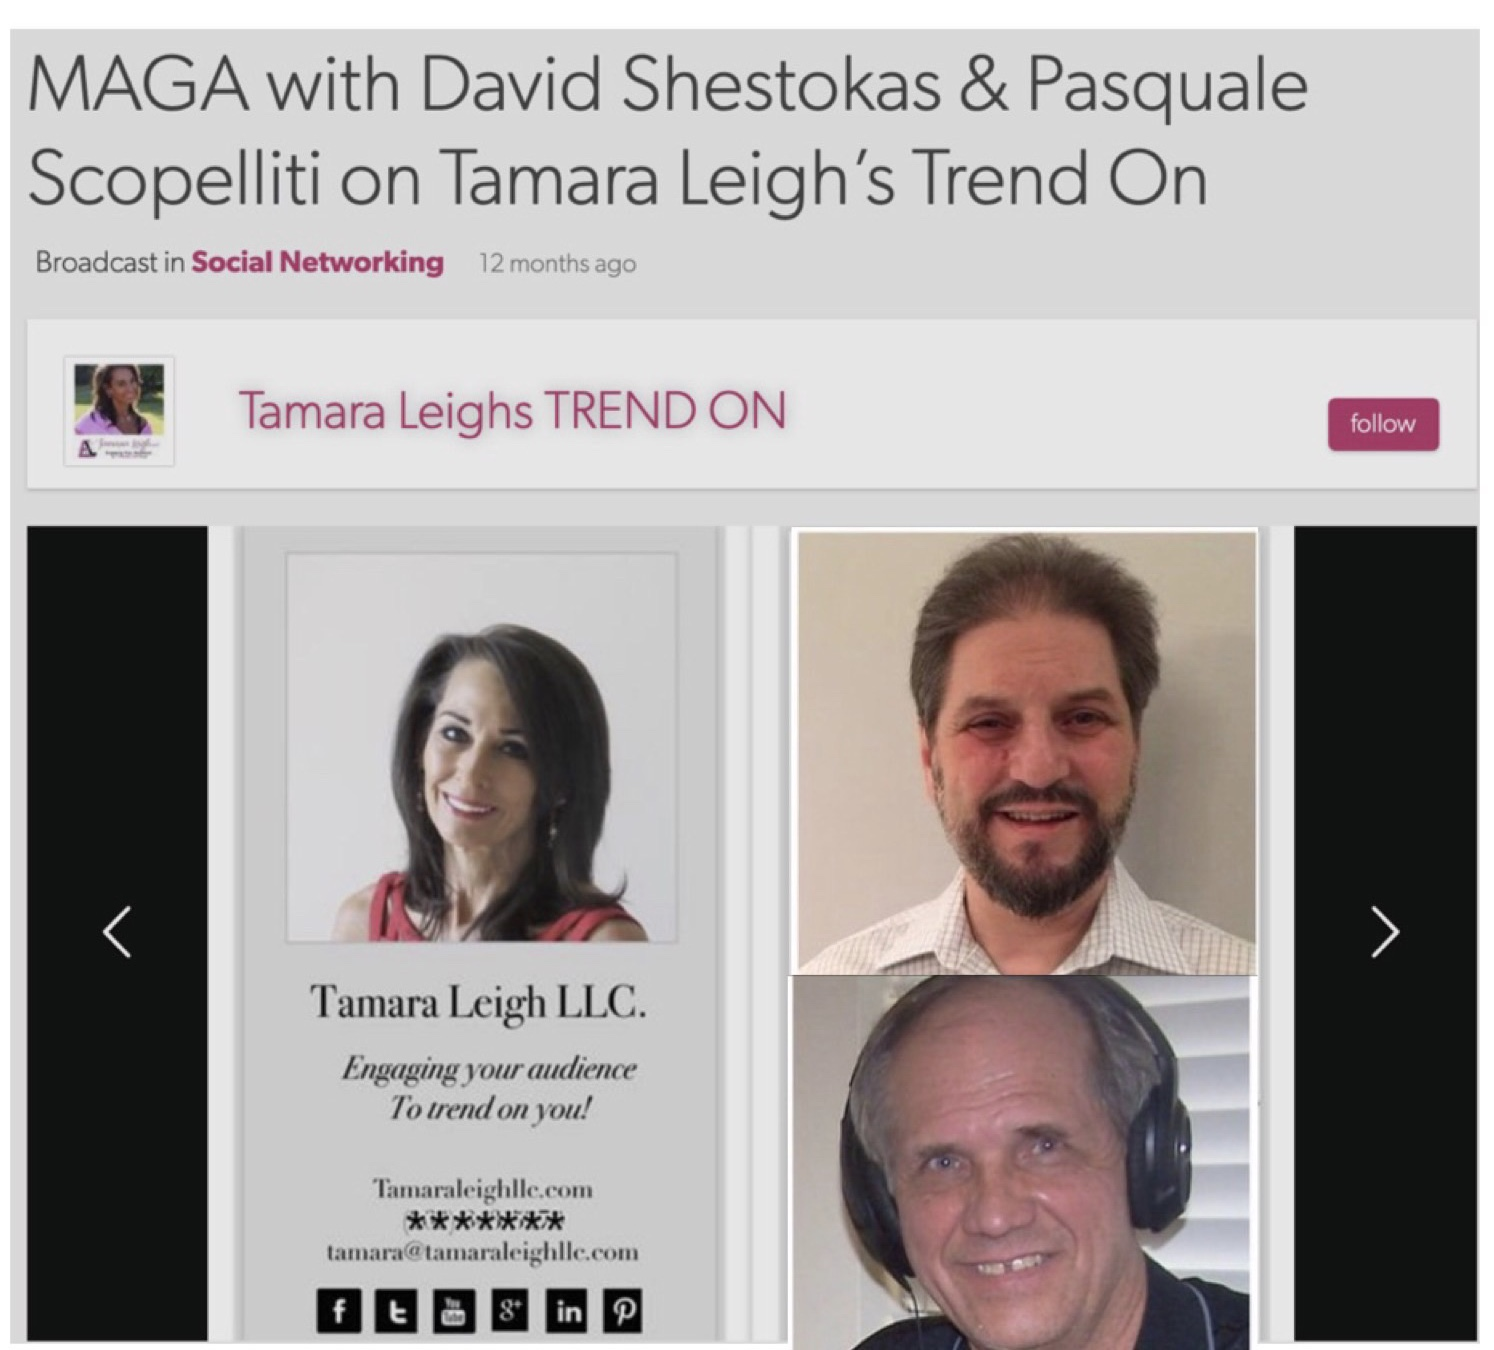 Tamara Leigh's Trend On - with Constitutional Expert & Attorney David Shestokasand Pasquale Scopelliti